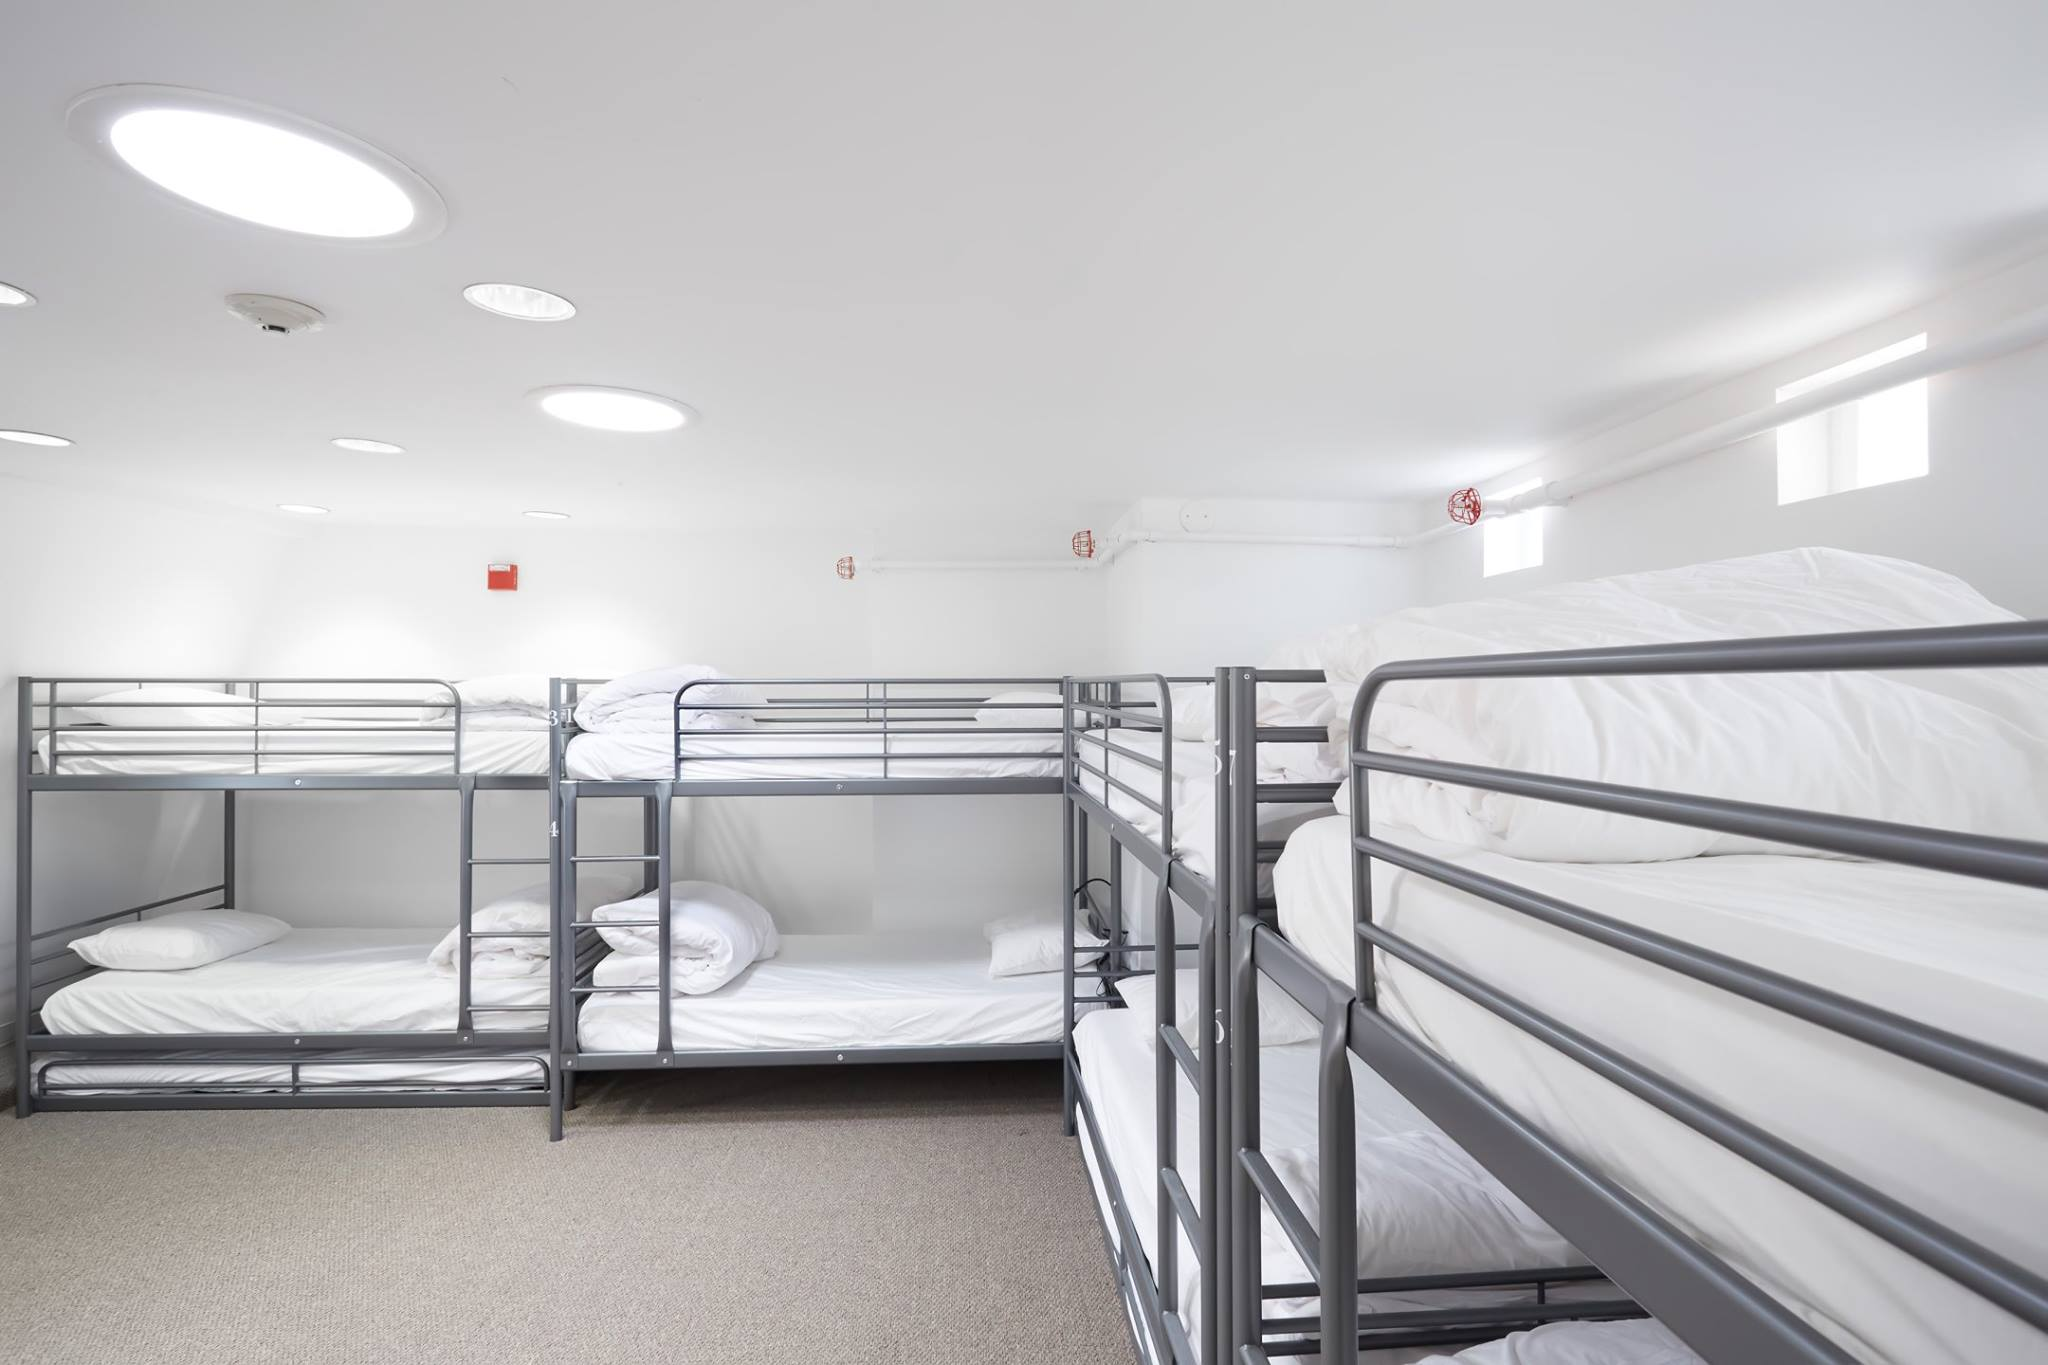 Bunk beds with clean linens arranged in a shared room